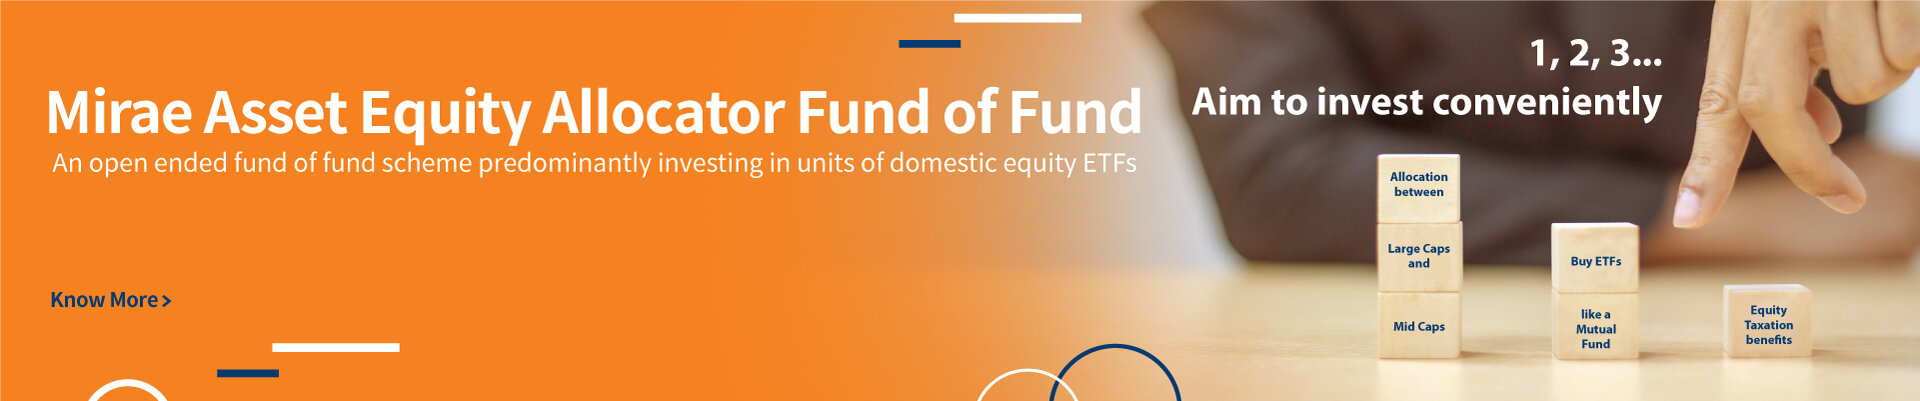 Mirae Asset Equity Allocator Fund of Fund